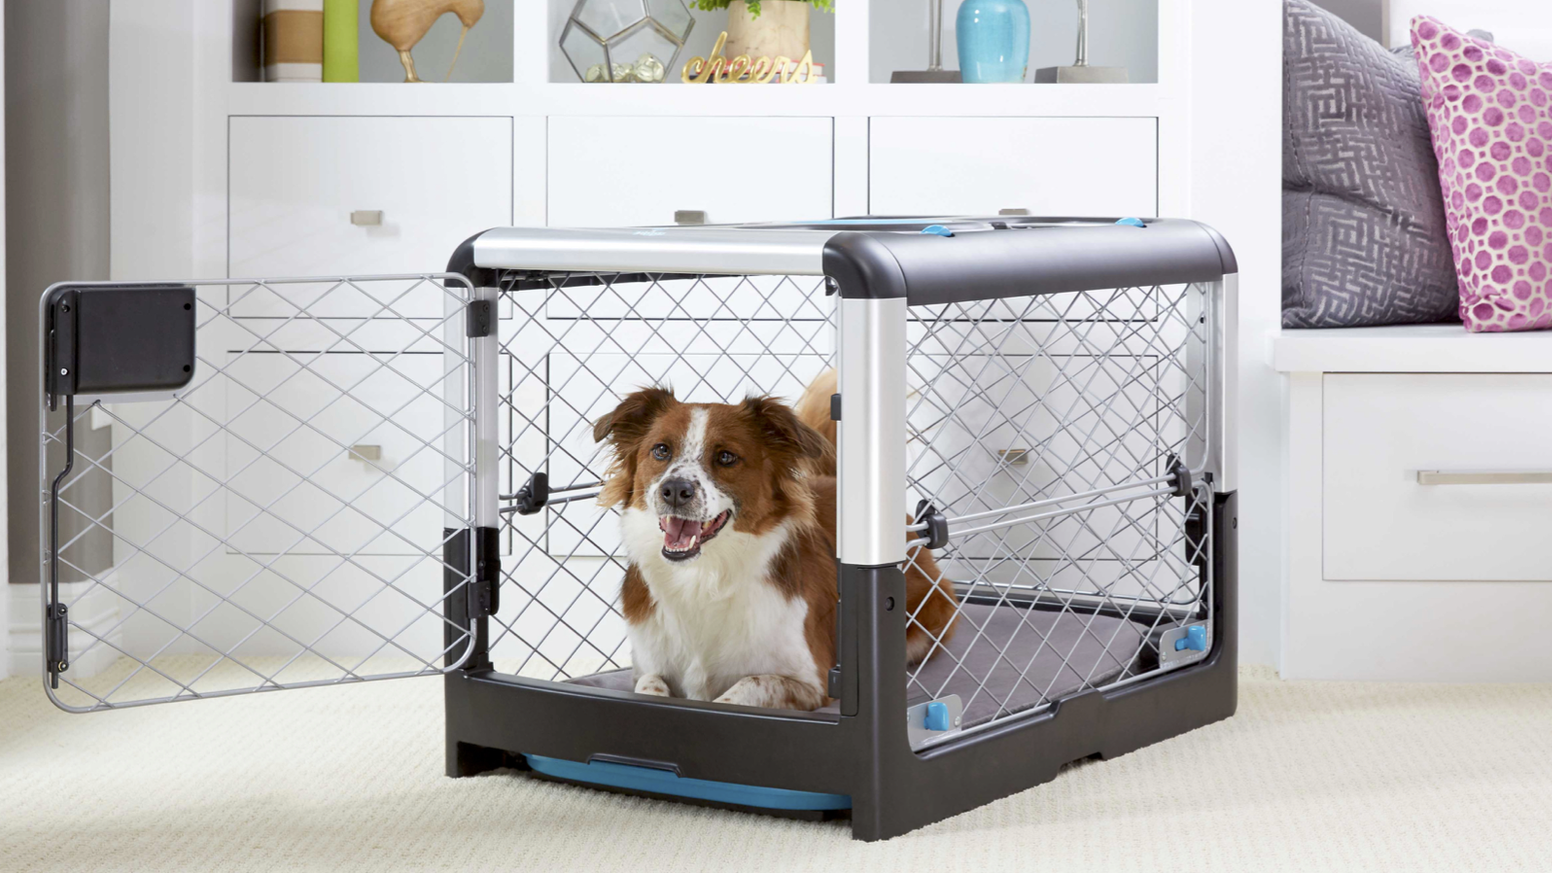 Diggs Revol Dog Crate Snooz Pad A Dog Crate Revolution By Zel